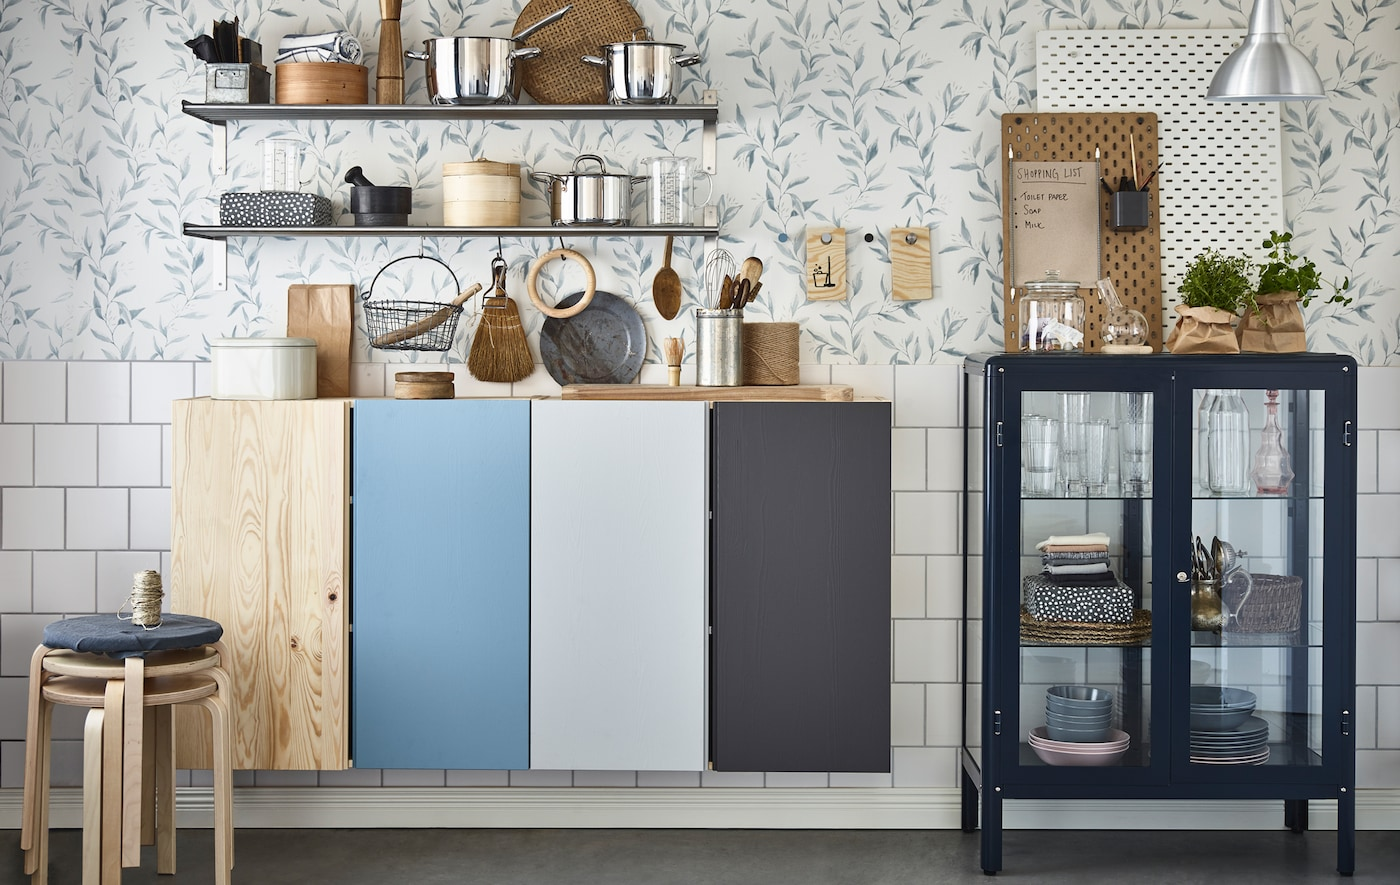 To organise a shared house, use different paint colours for each flatmate inside and outside kitchen cabinets, on pot stands as message boards and behind open bathroom shelves.